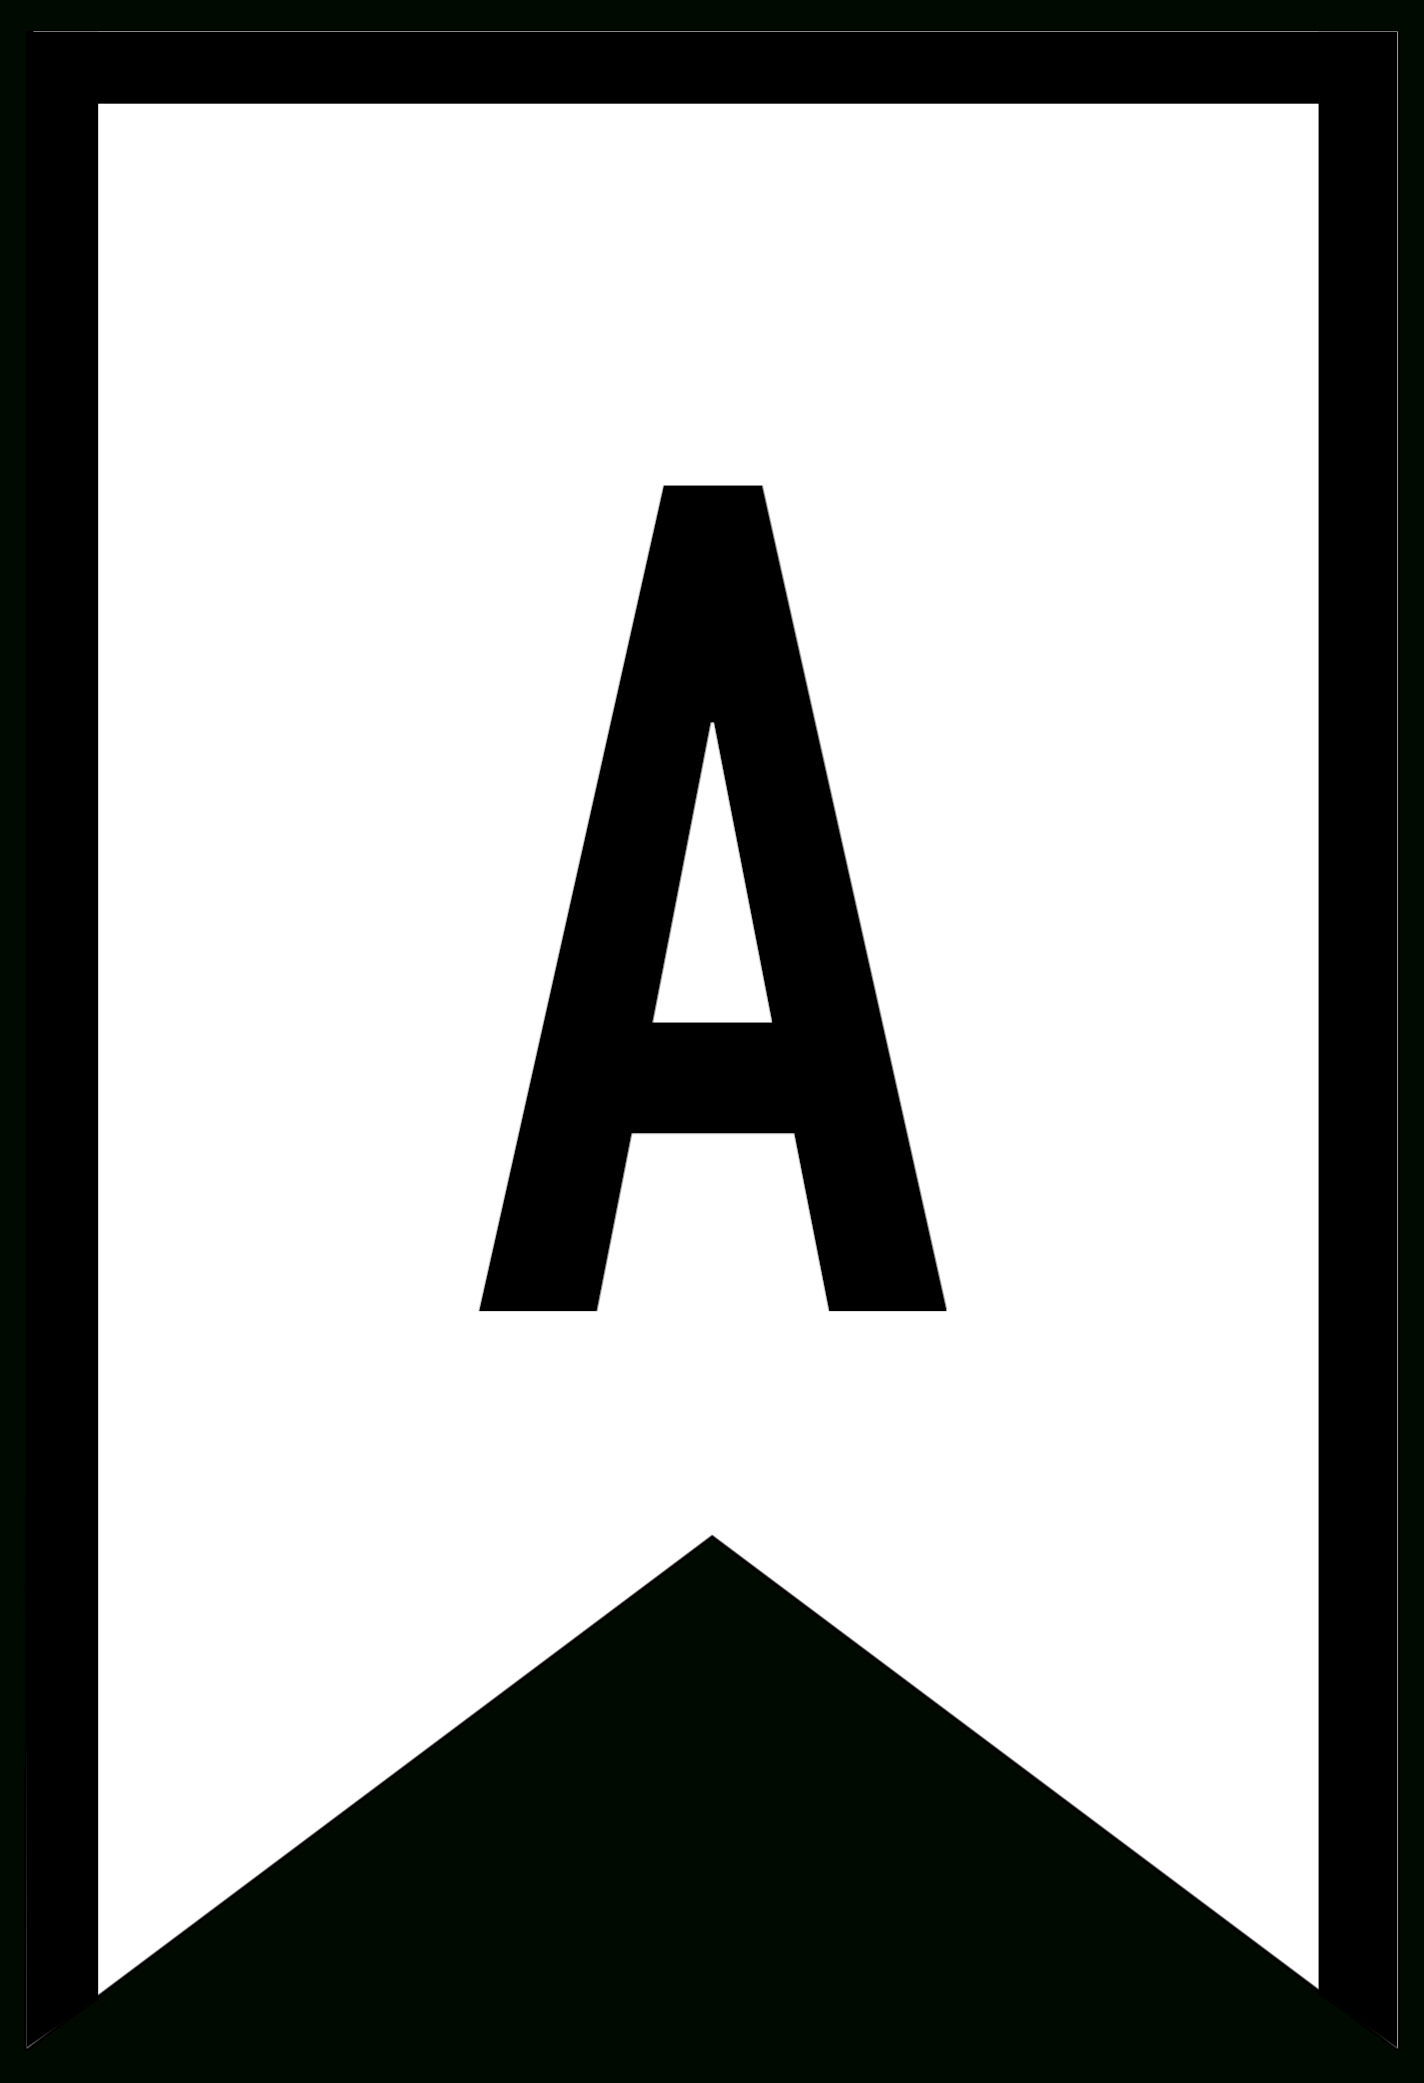 Banner Templates Free Printable Abc Letters  Paper Trail Design Regarding Free Letter Templates For Banners